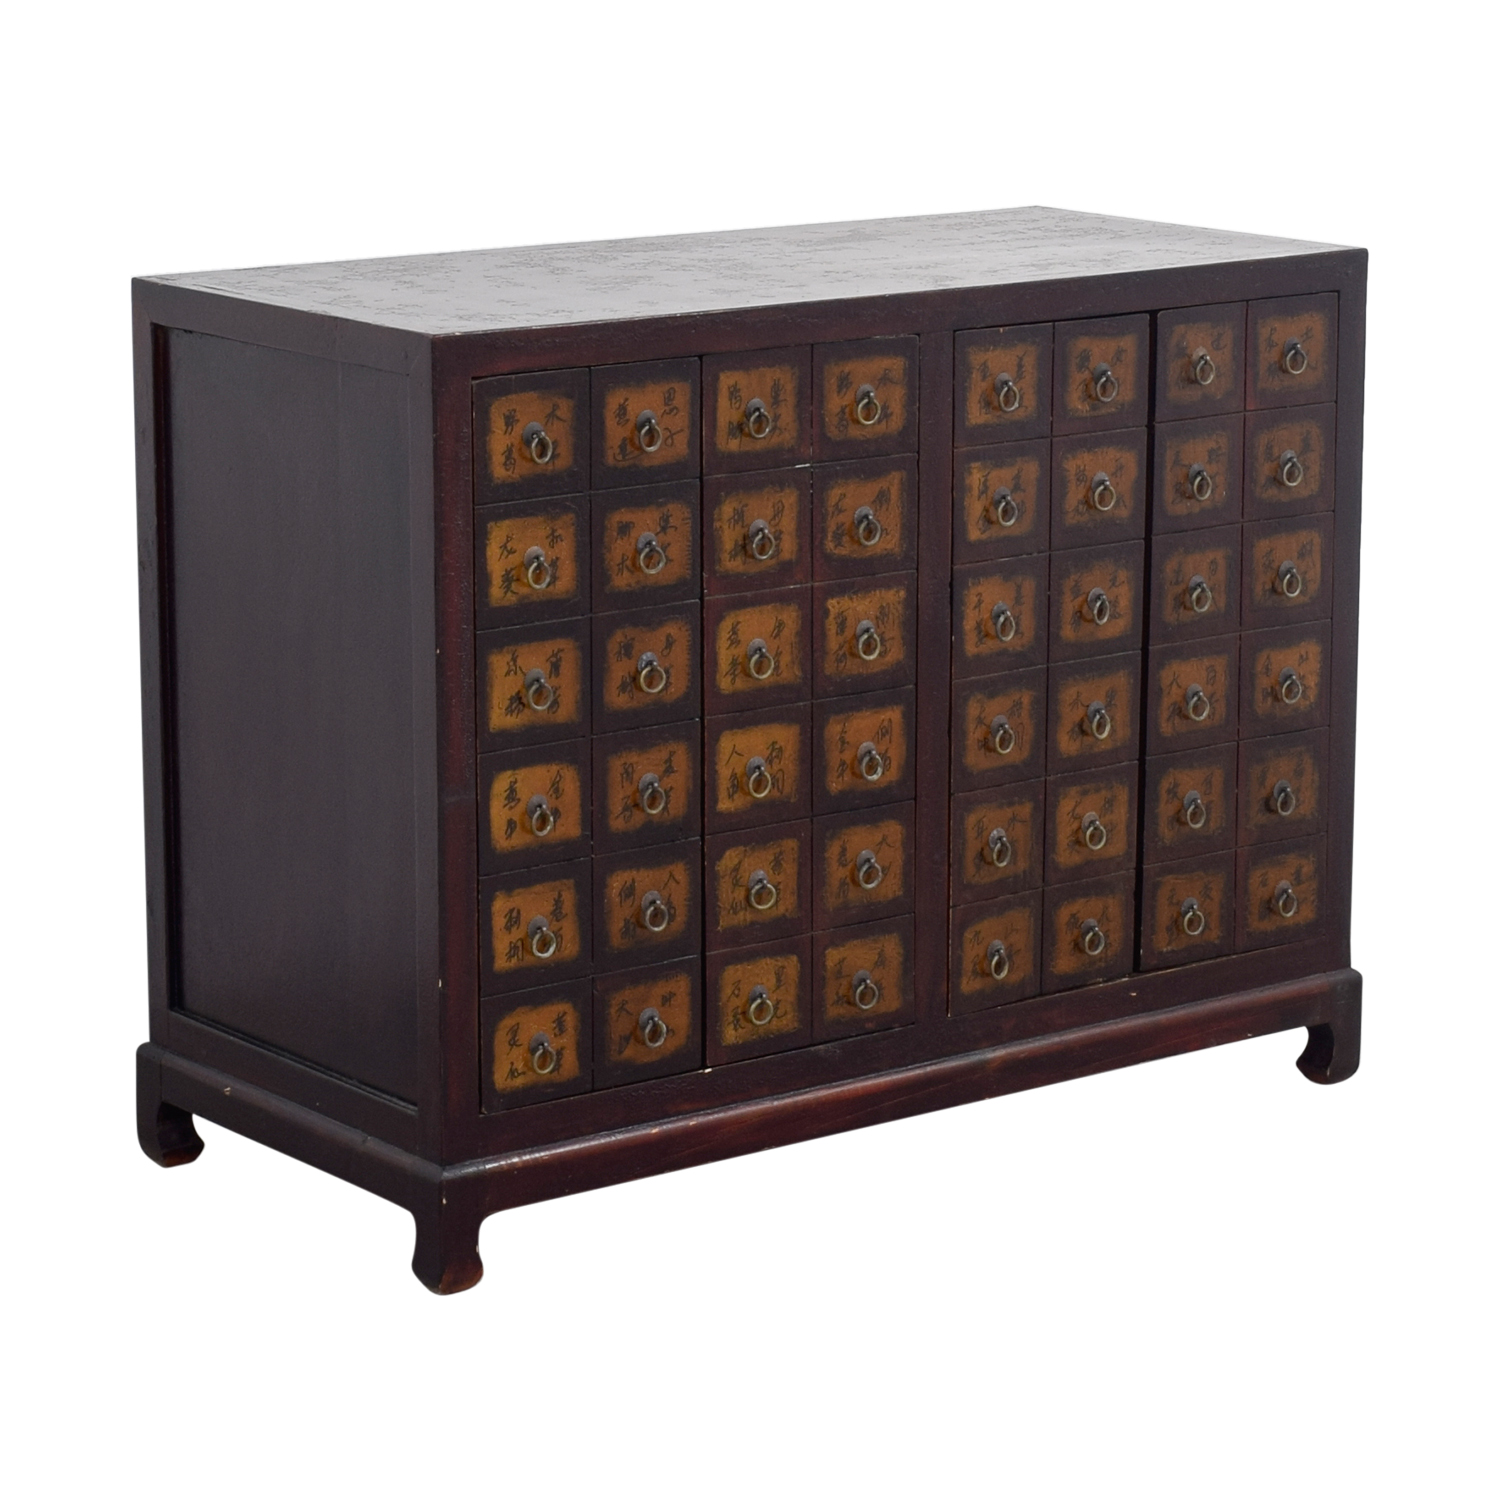 79% OFF - Asian Barn Asian Barn Antique Chinese Cabinet / Storage